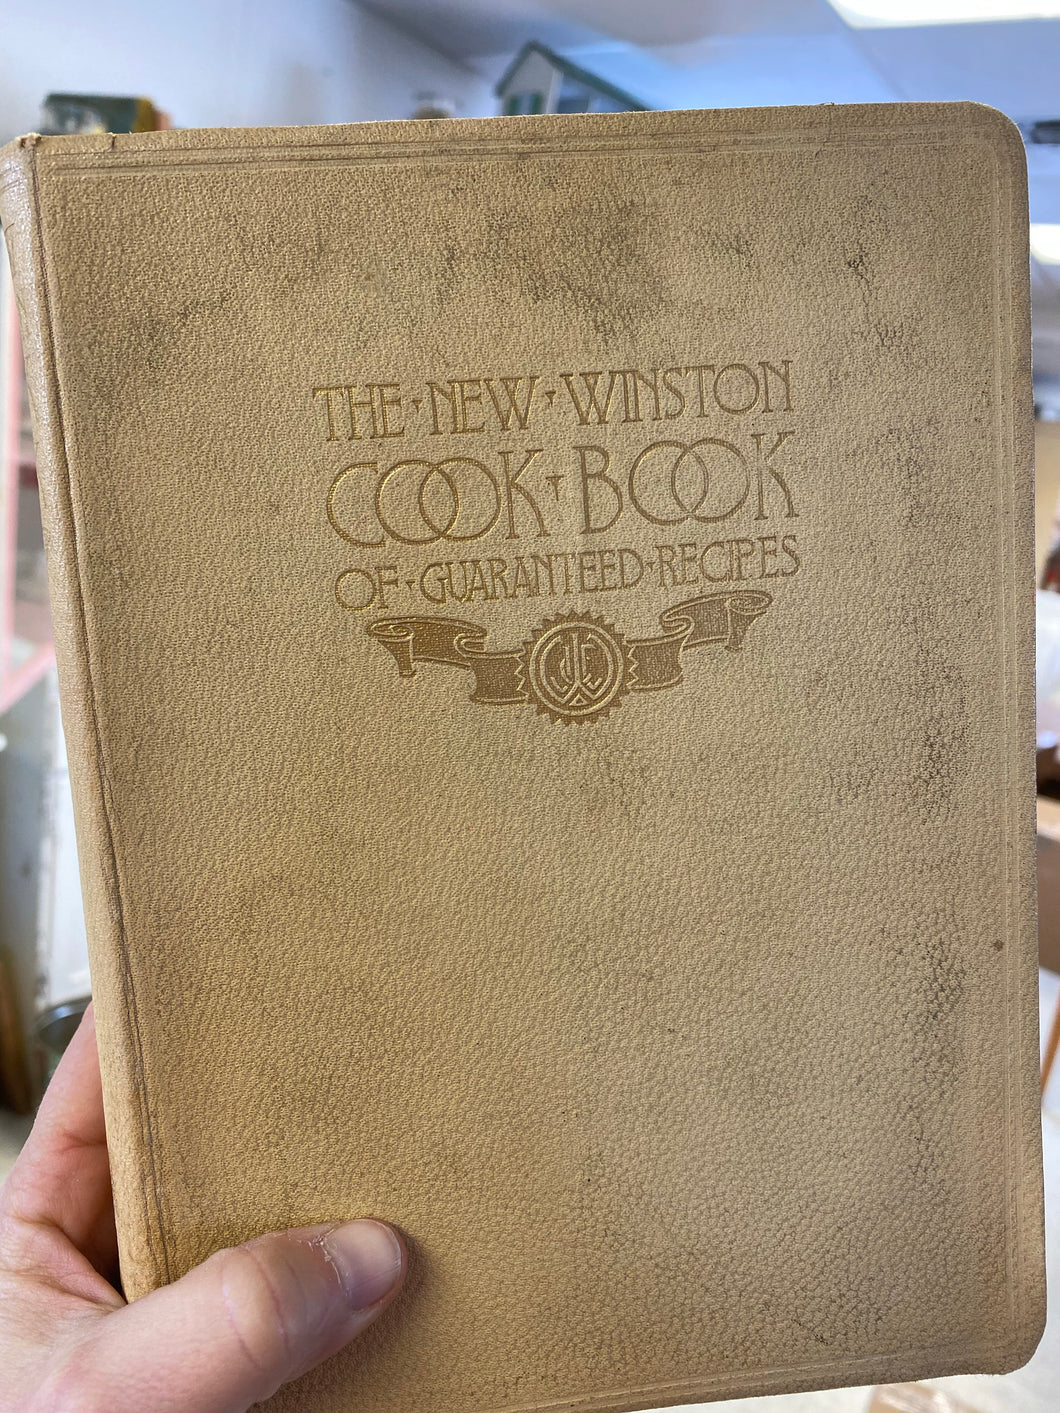 New Winston Cook Book of Guaranteed Recipes